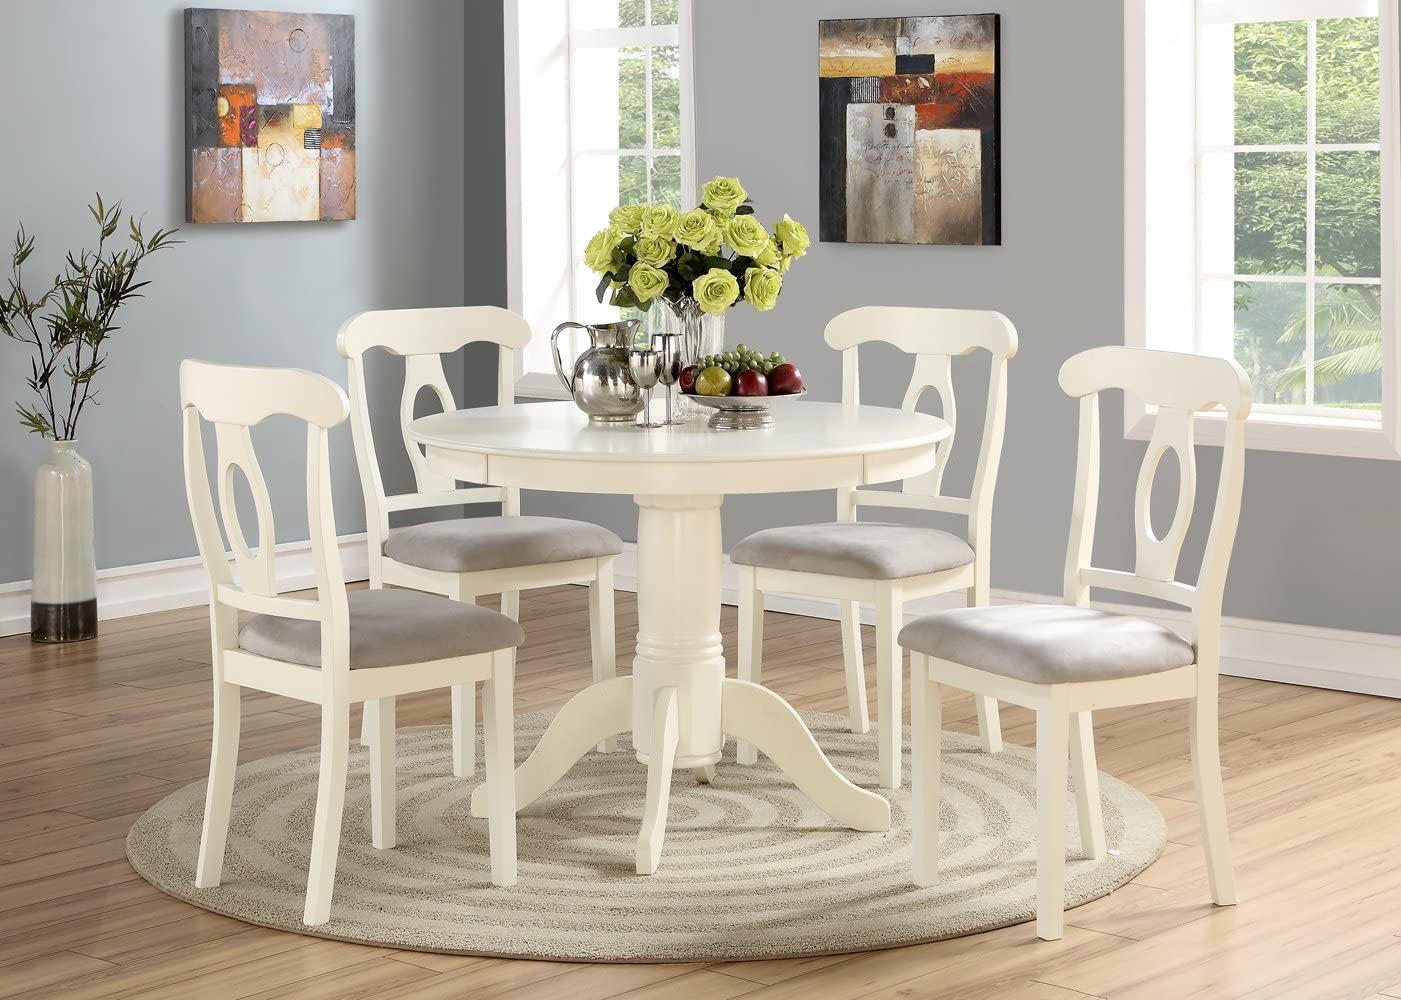 Cheap 5 Piece Dining Set With Caster Wheels